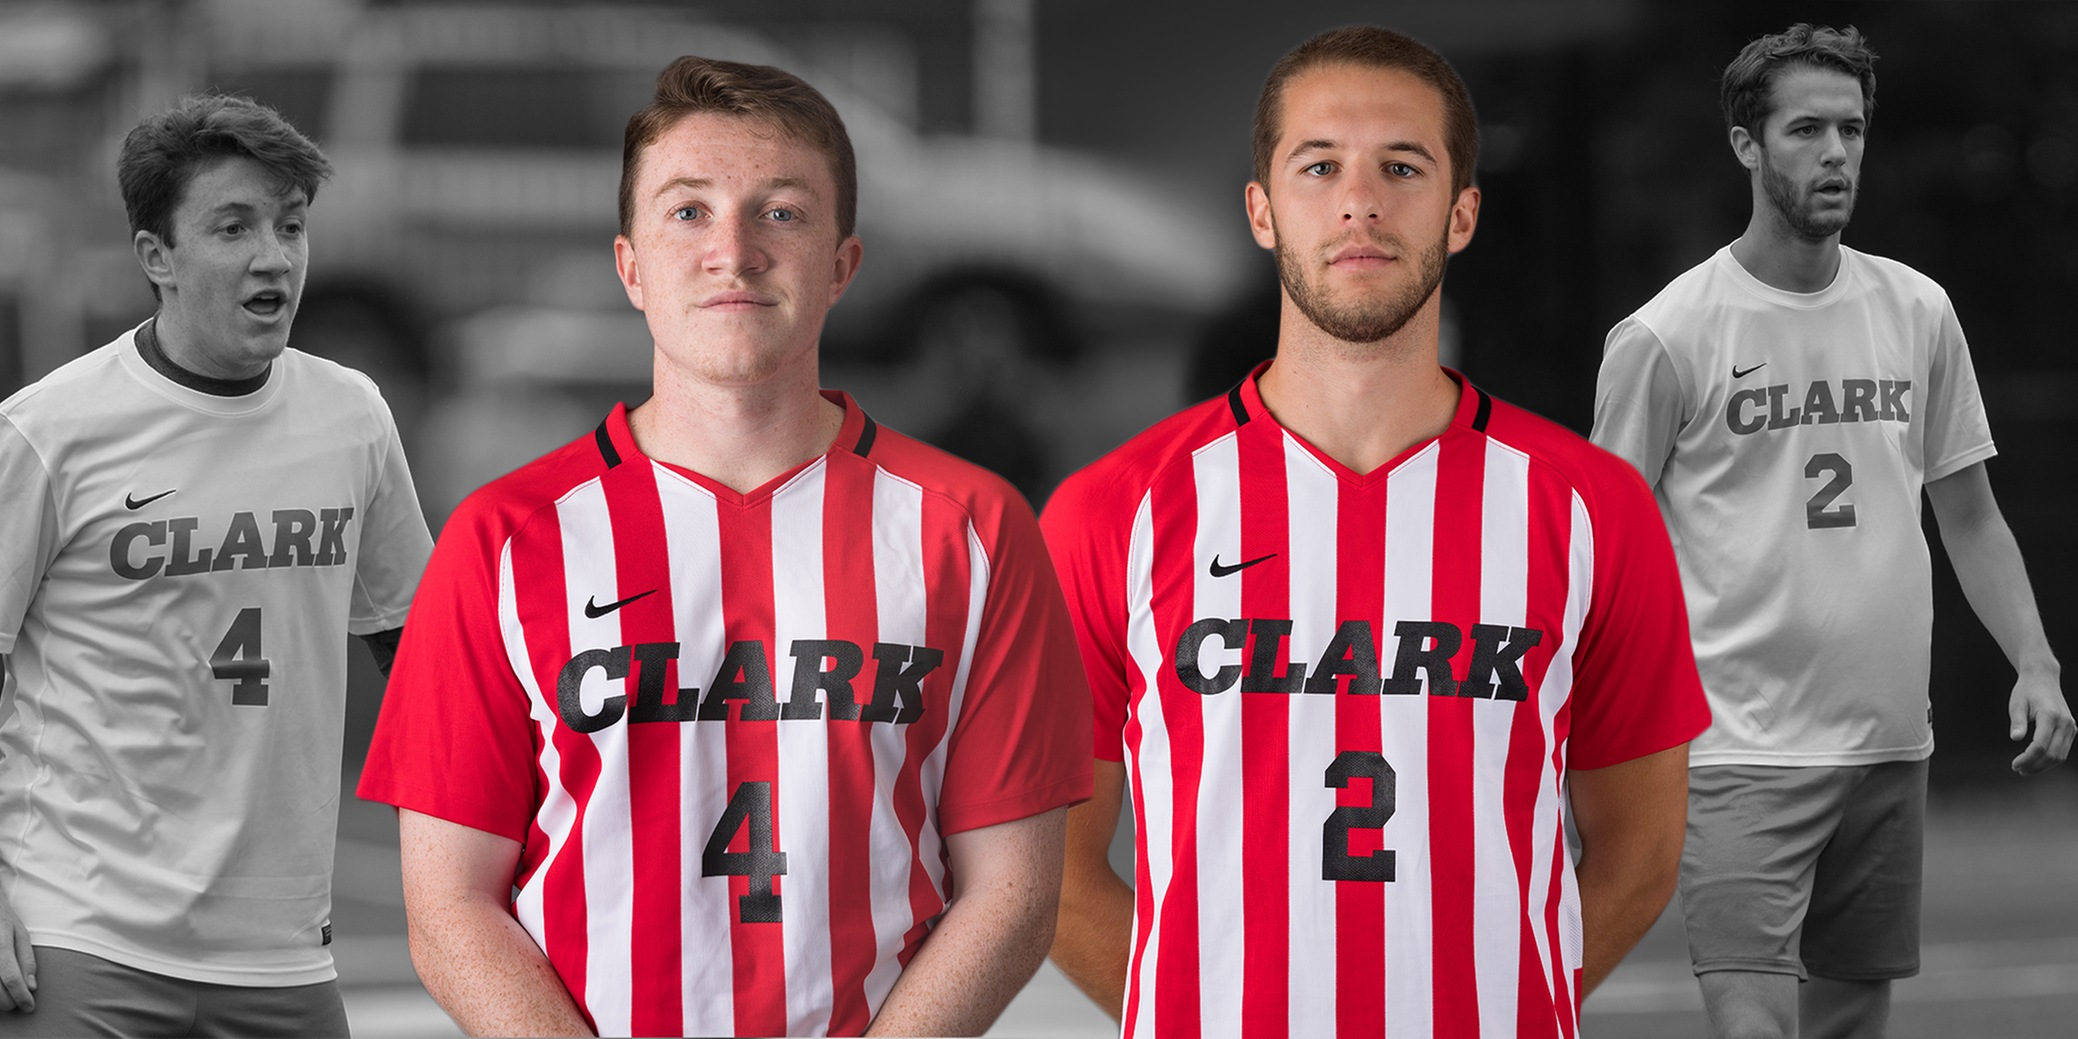 Stark and Feshbach-Meriney named 2018 Men's Soccer Captains